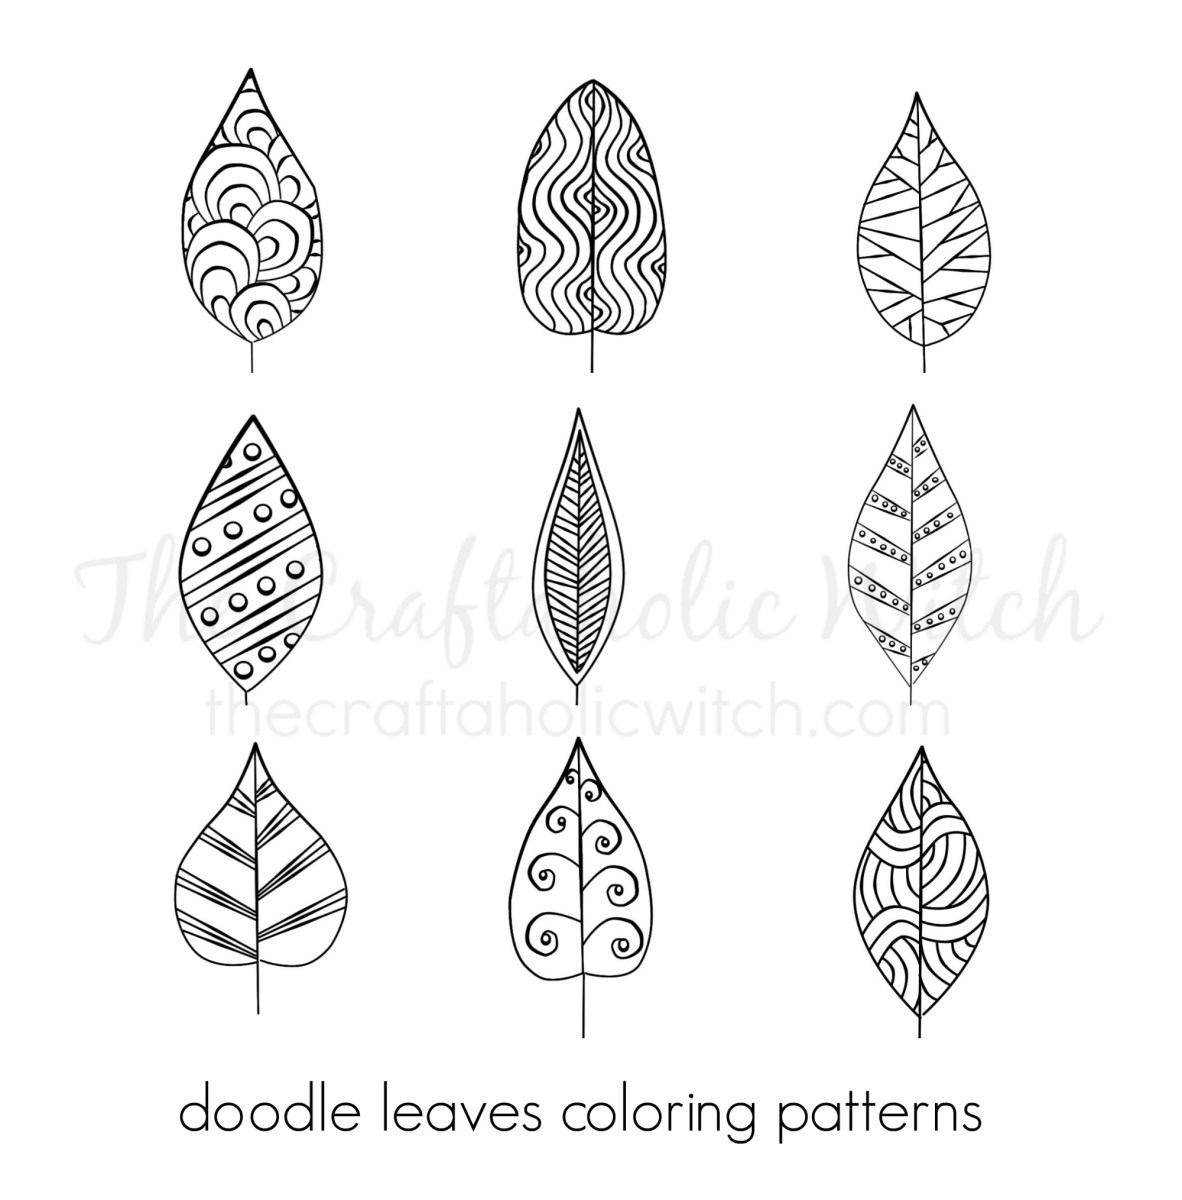 Doodle Leaves Coloring Patterns